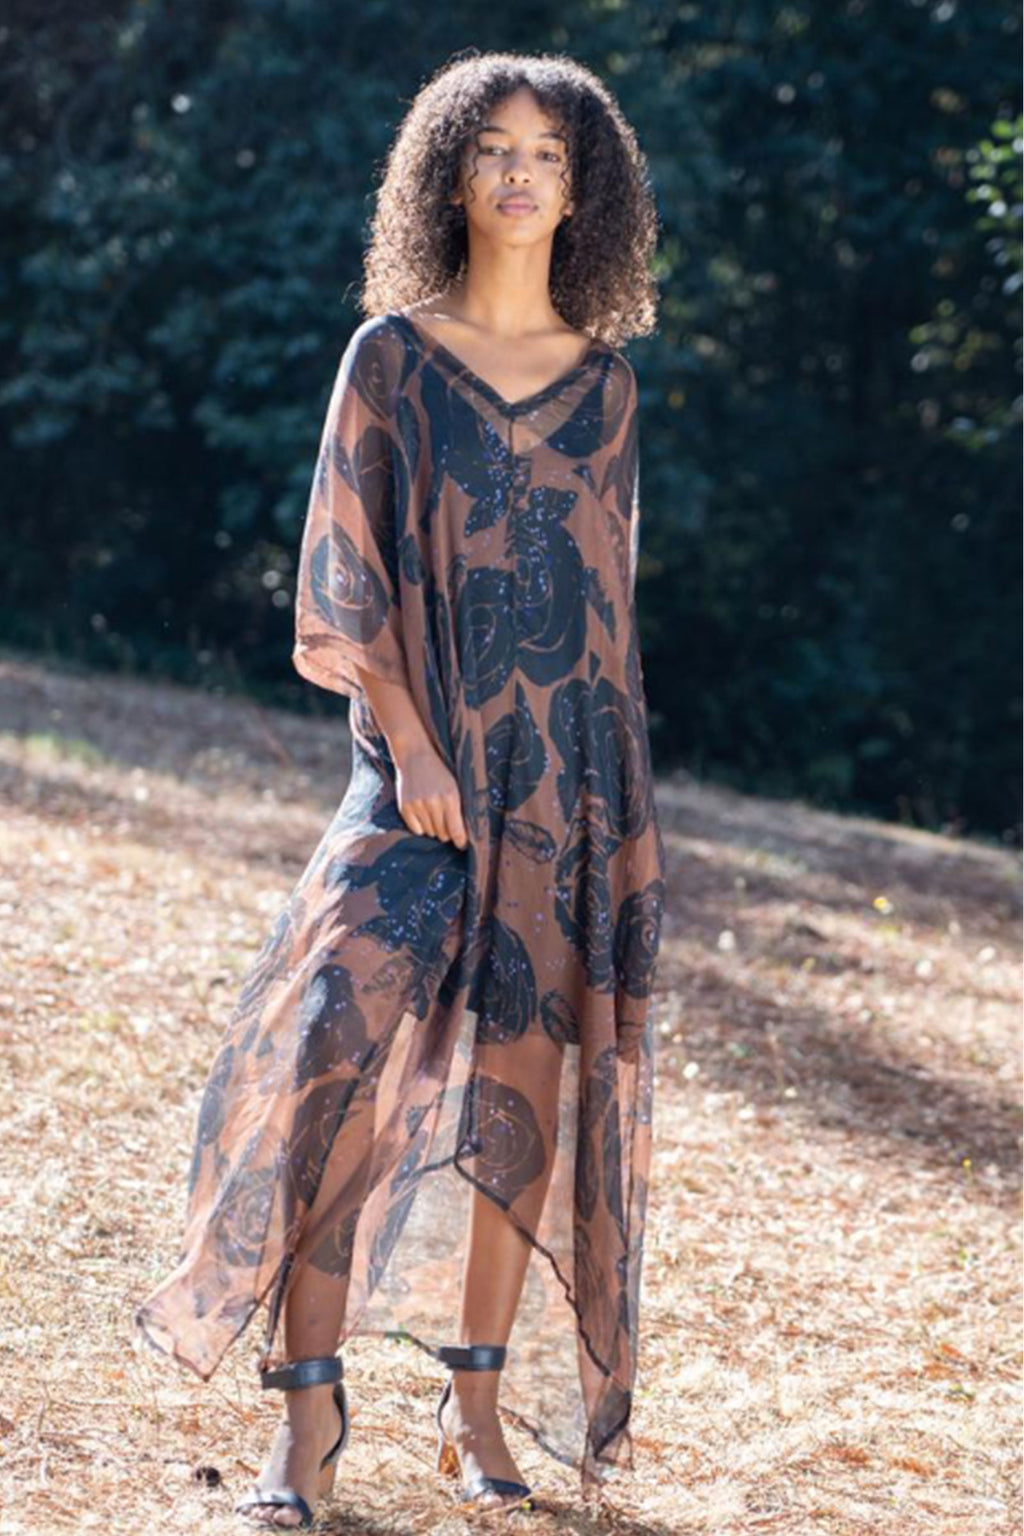 Nene Kaftan Dress Black Rose Chiffon 100% Silk